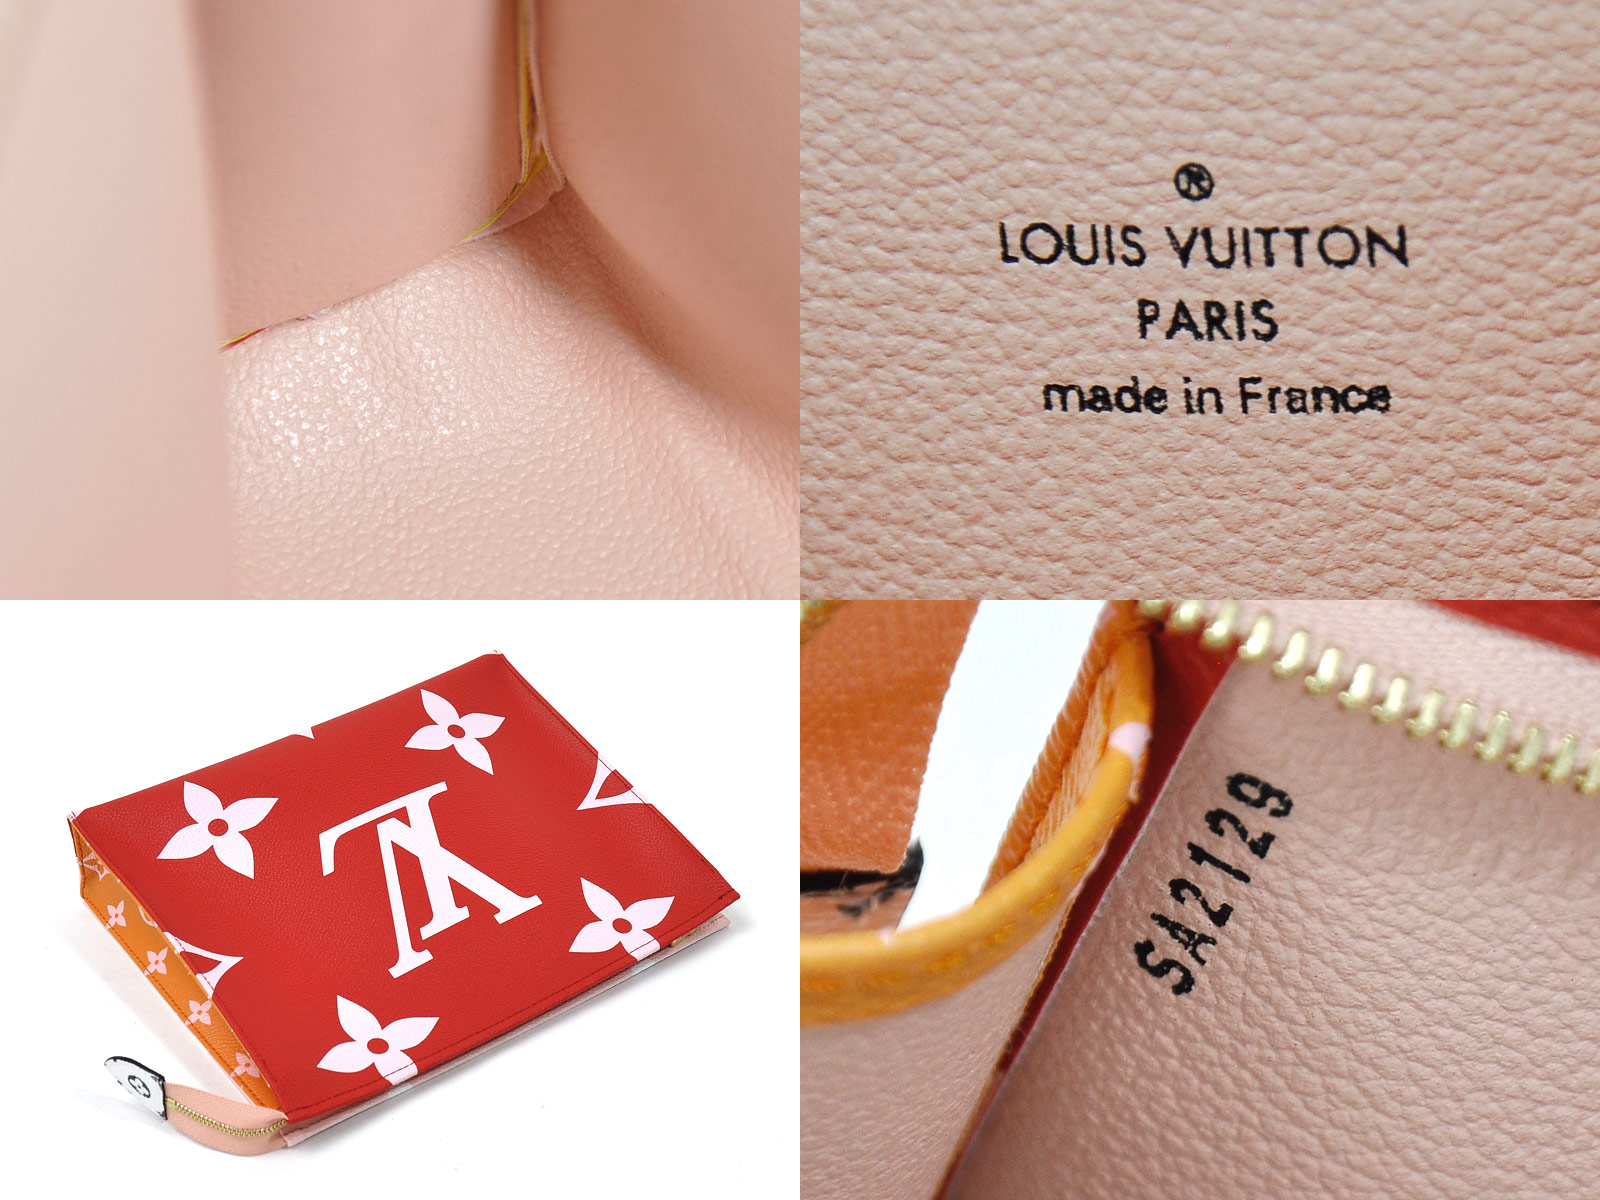 Auth-Louis-Vuitton-Monogram-Giant-Pochette-Toilette-Clutch-Bag-Rouge-Pink-96998 thumbnail 11